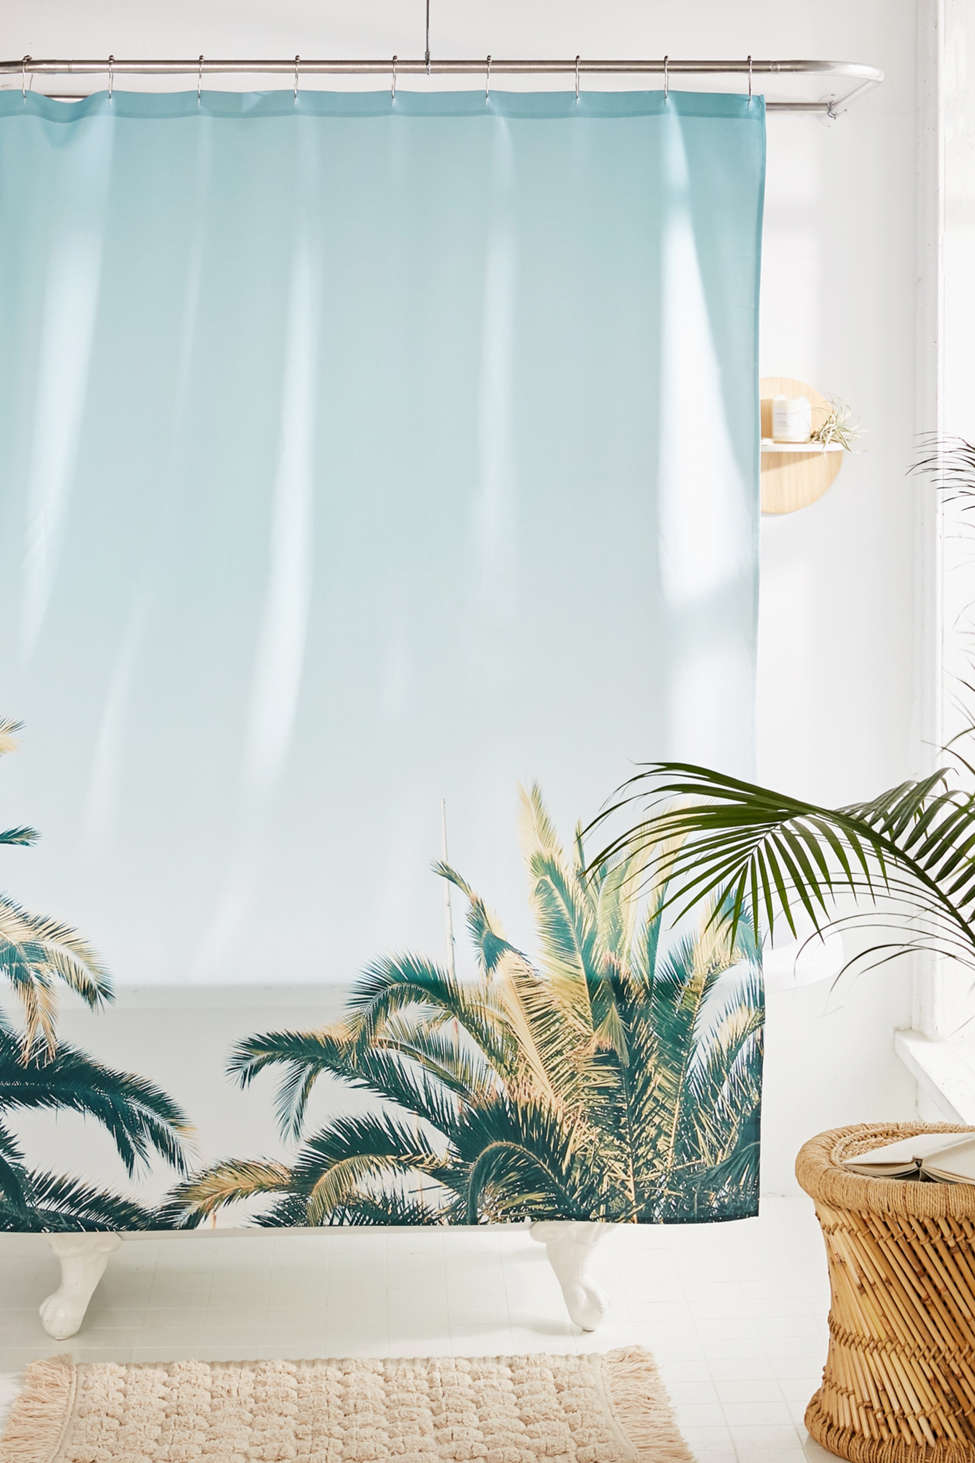 Slide View: 1: Cassia Beck For Deny Summertime Shower Curtain